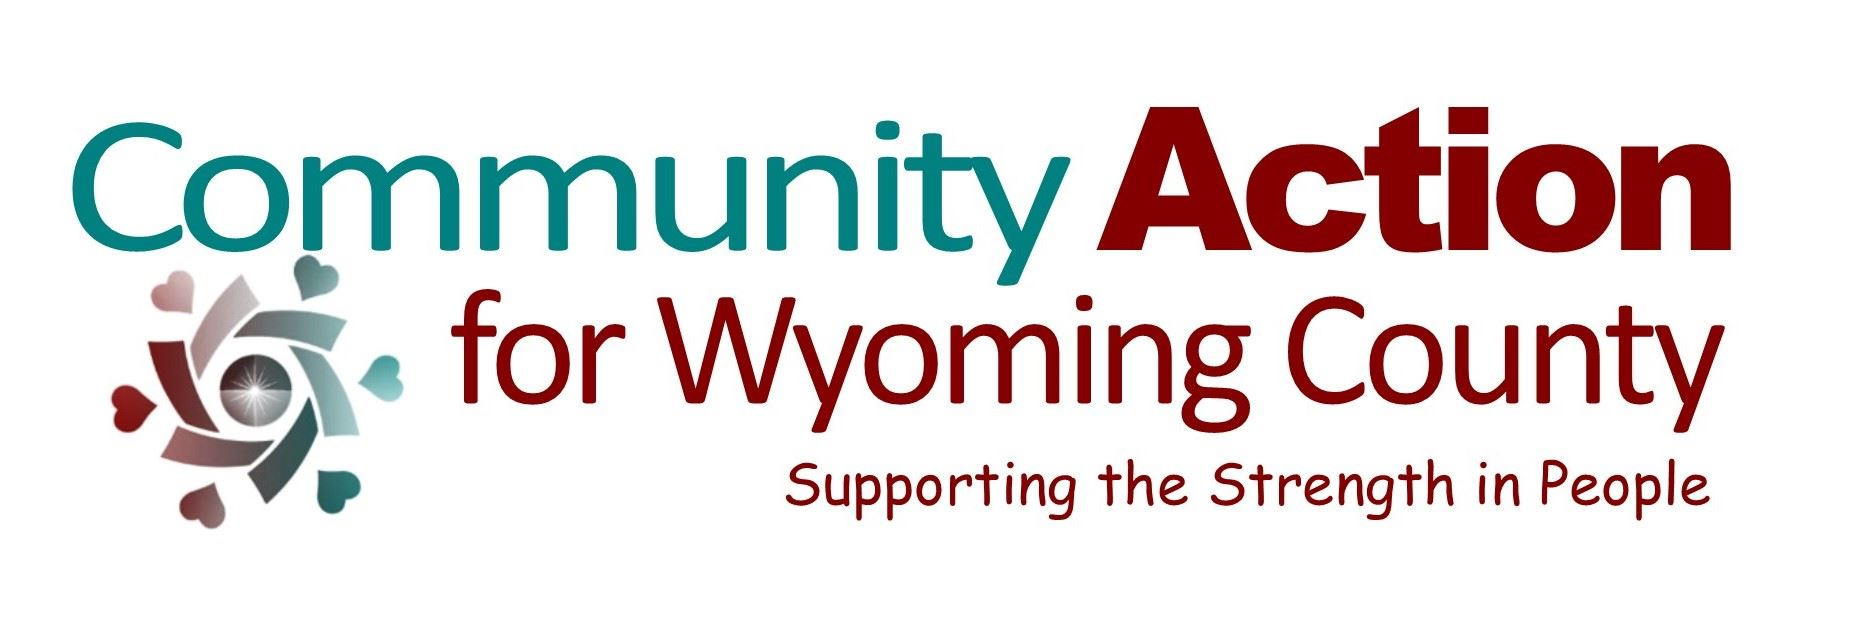 Community Action Logo 2018 JPG